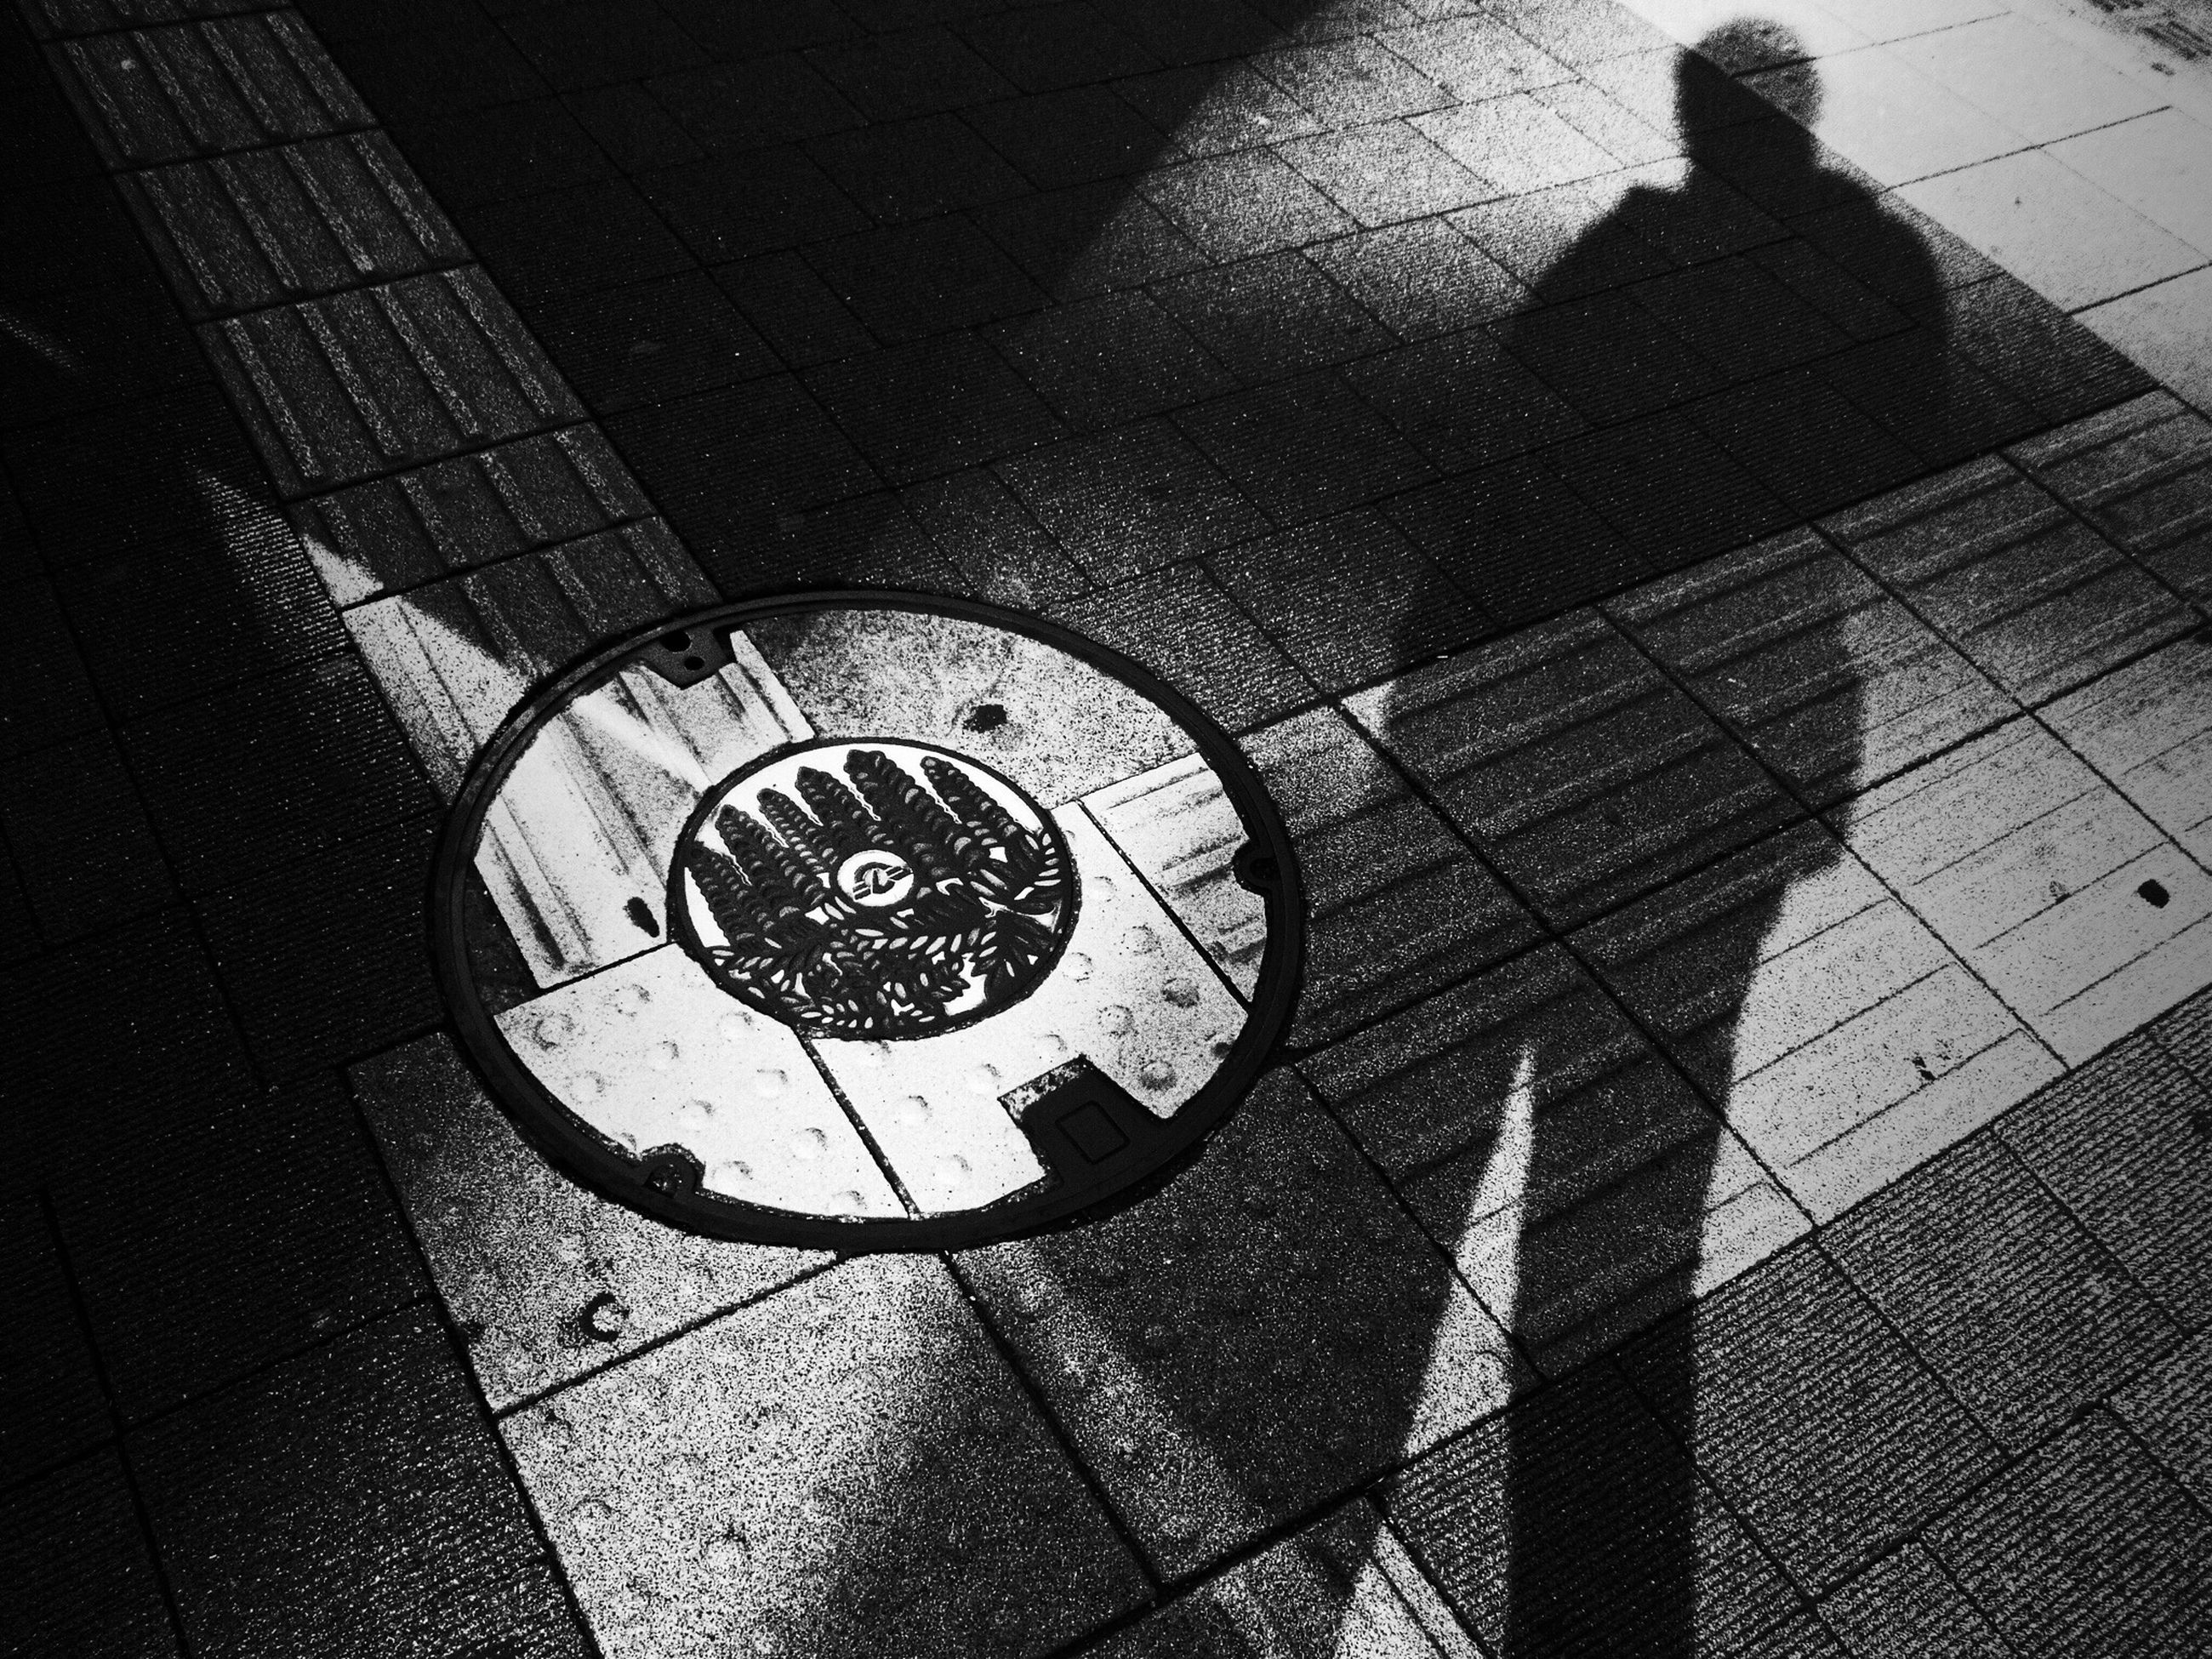 high angle view, street, shadow, communication, transportation, clock, sunlight, time, day, road marking, outdoors, sidewalk, number, road, text, geometric shape, close-up, manhole, guidance